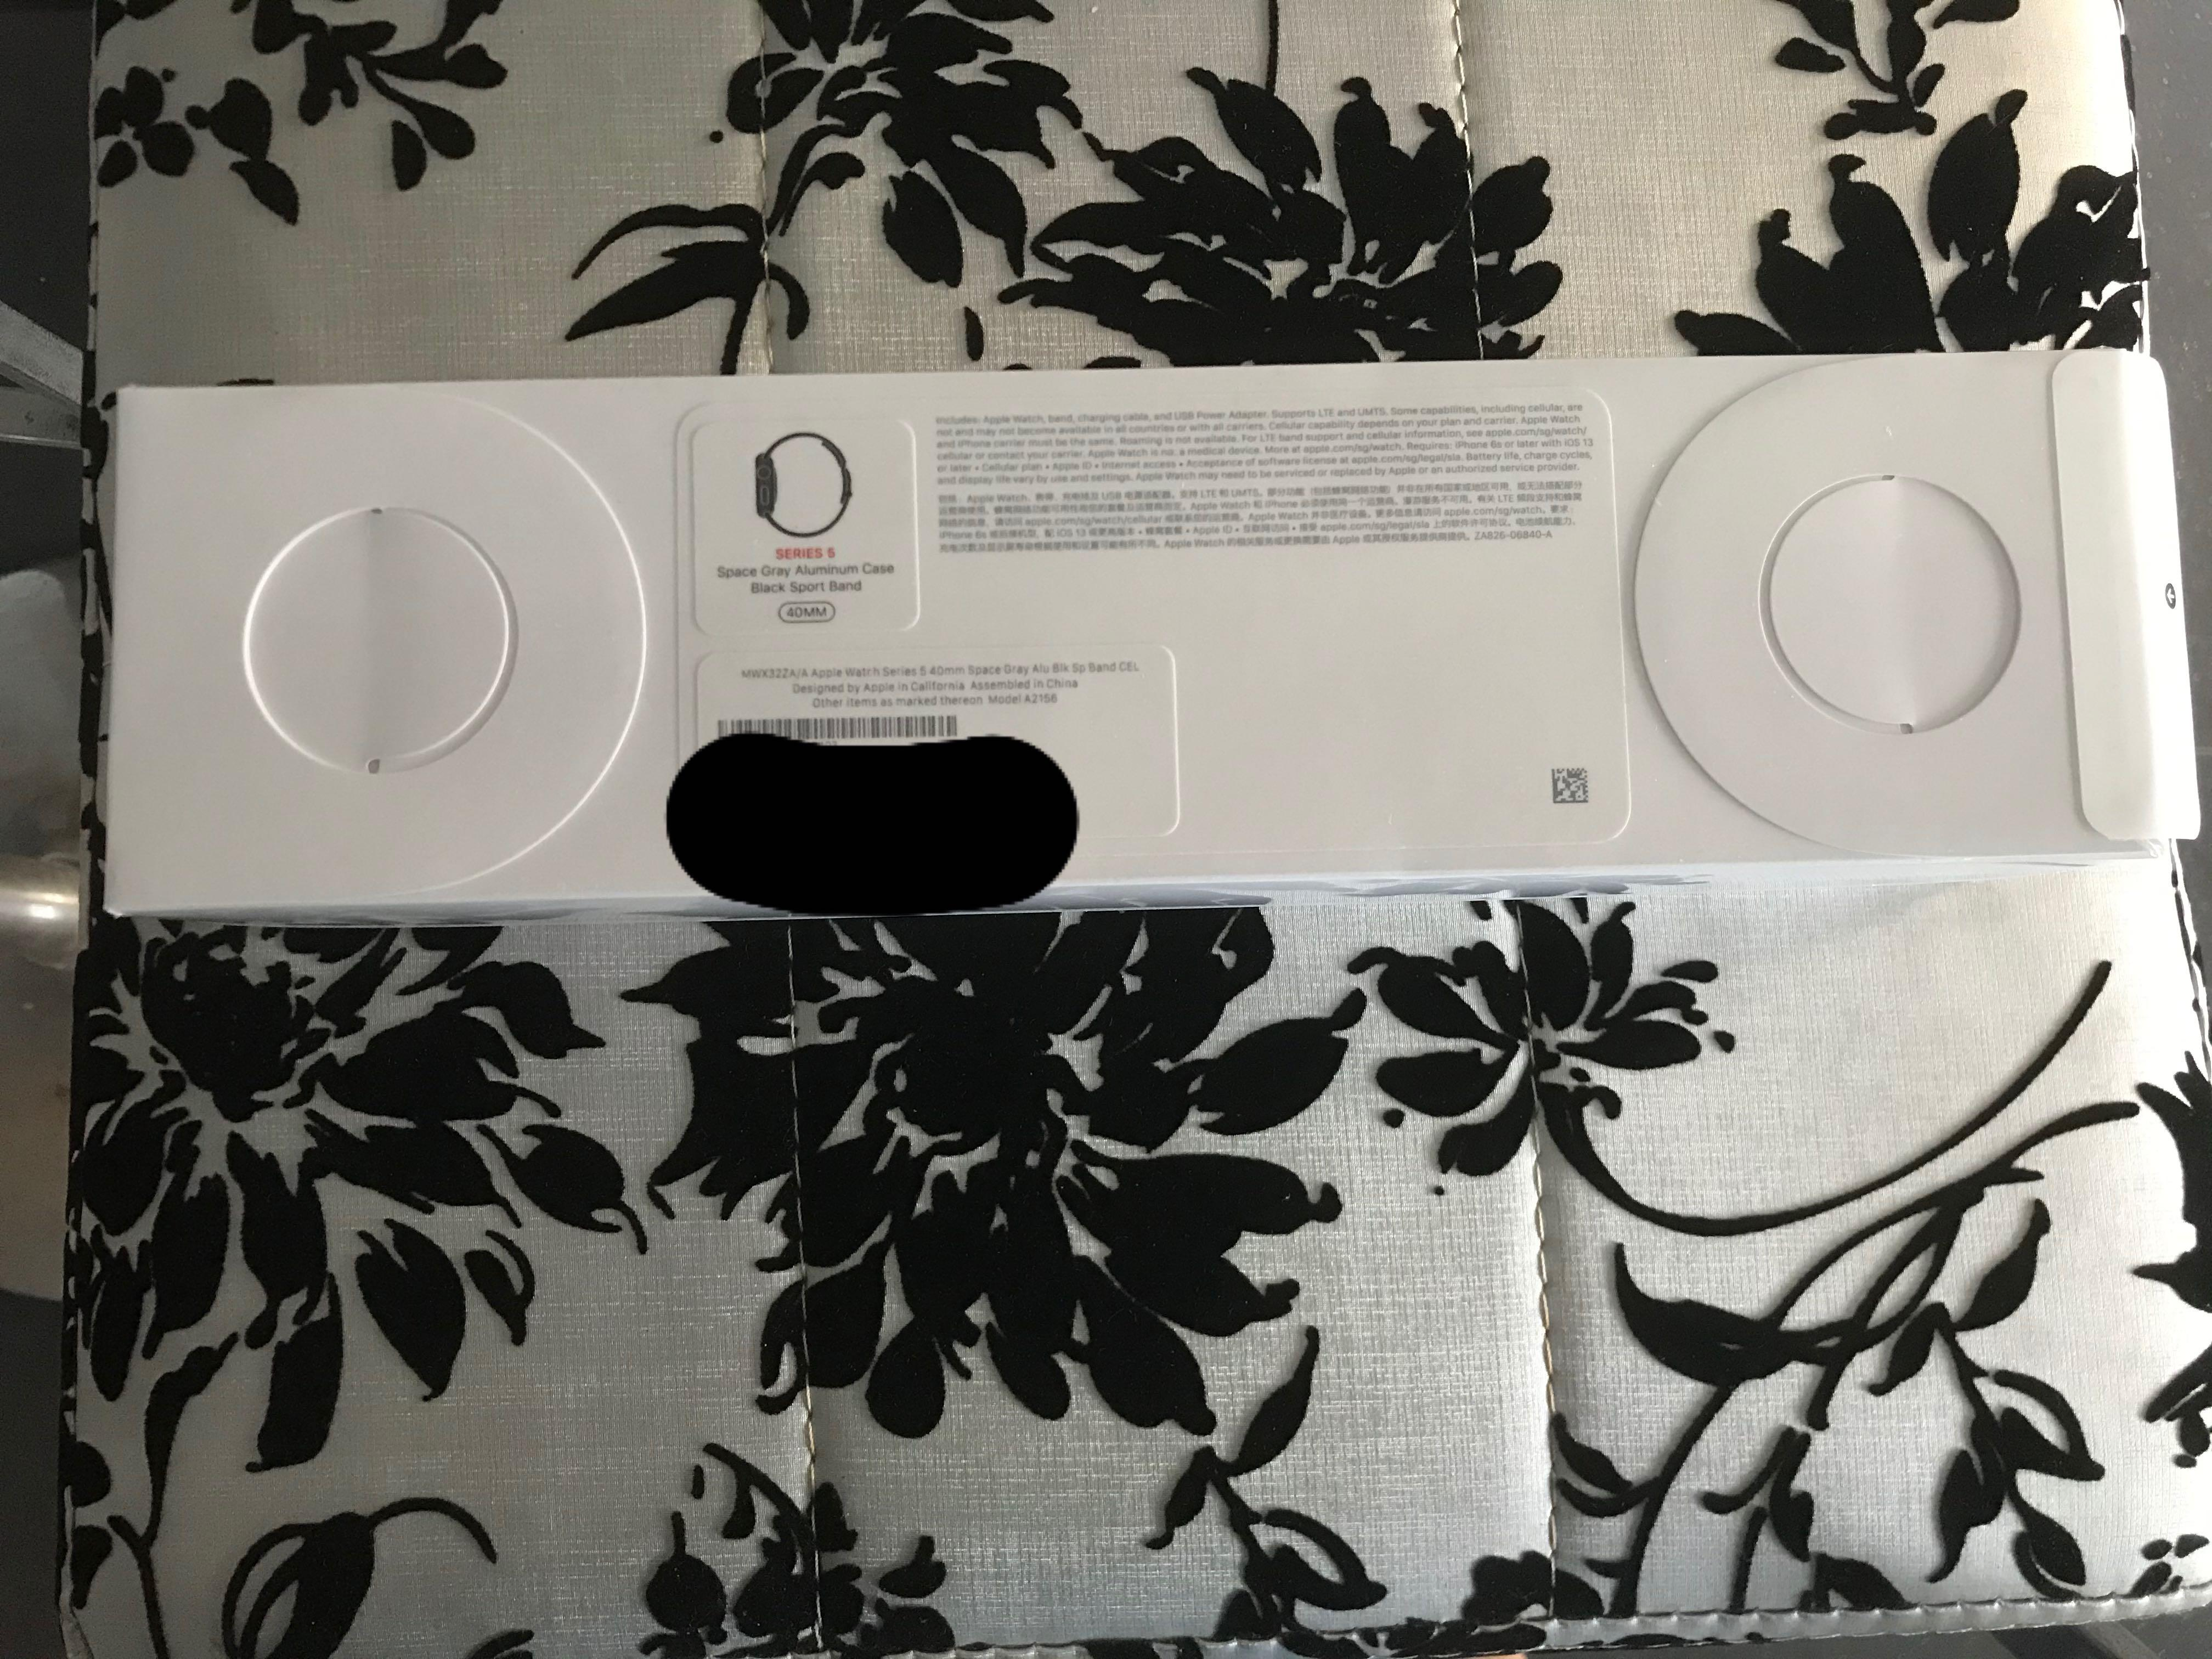 Apple Watch Space Grey Aluminium Case with Sport Band**RTP $749**Apple Watch Series 5